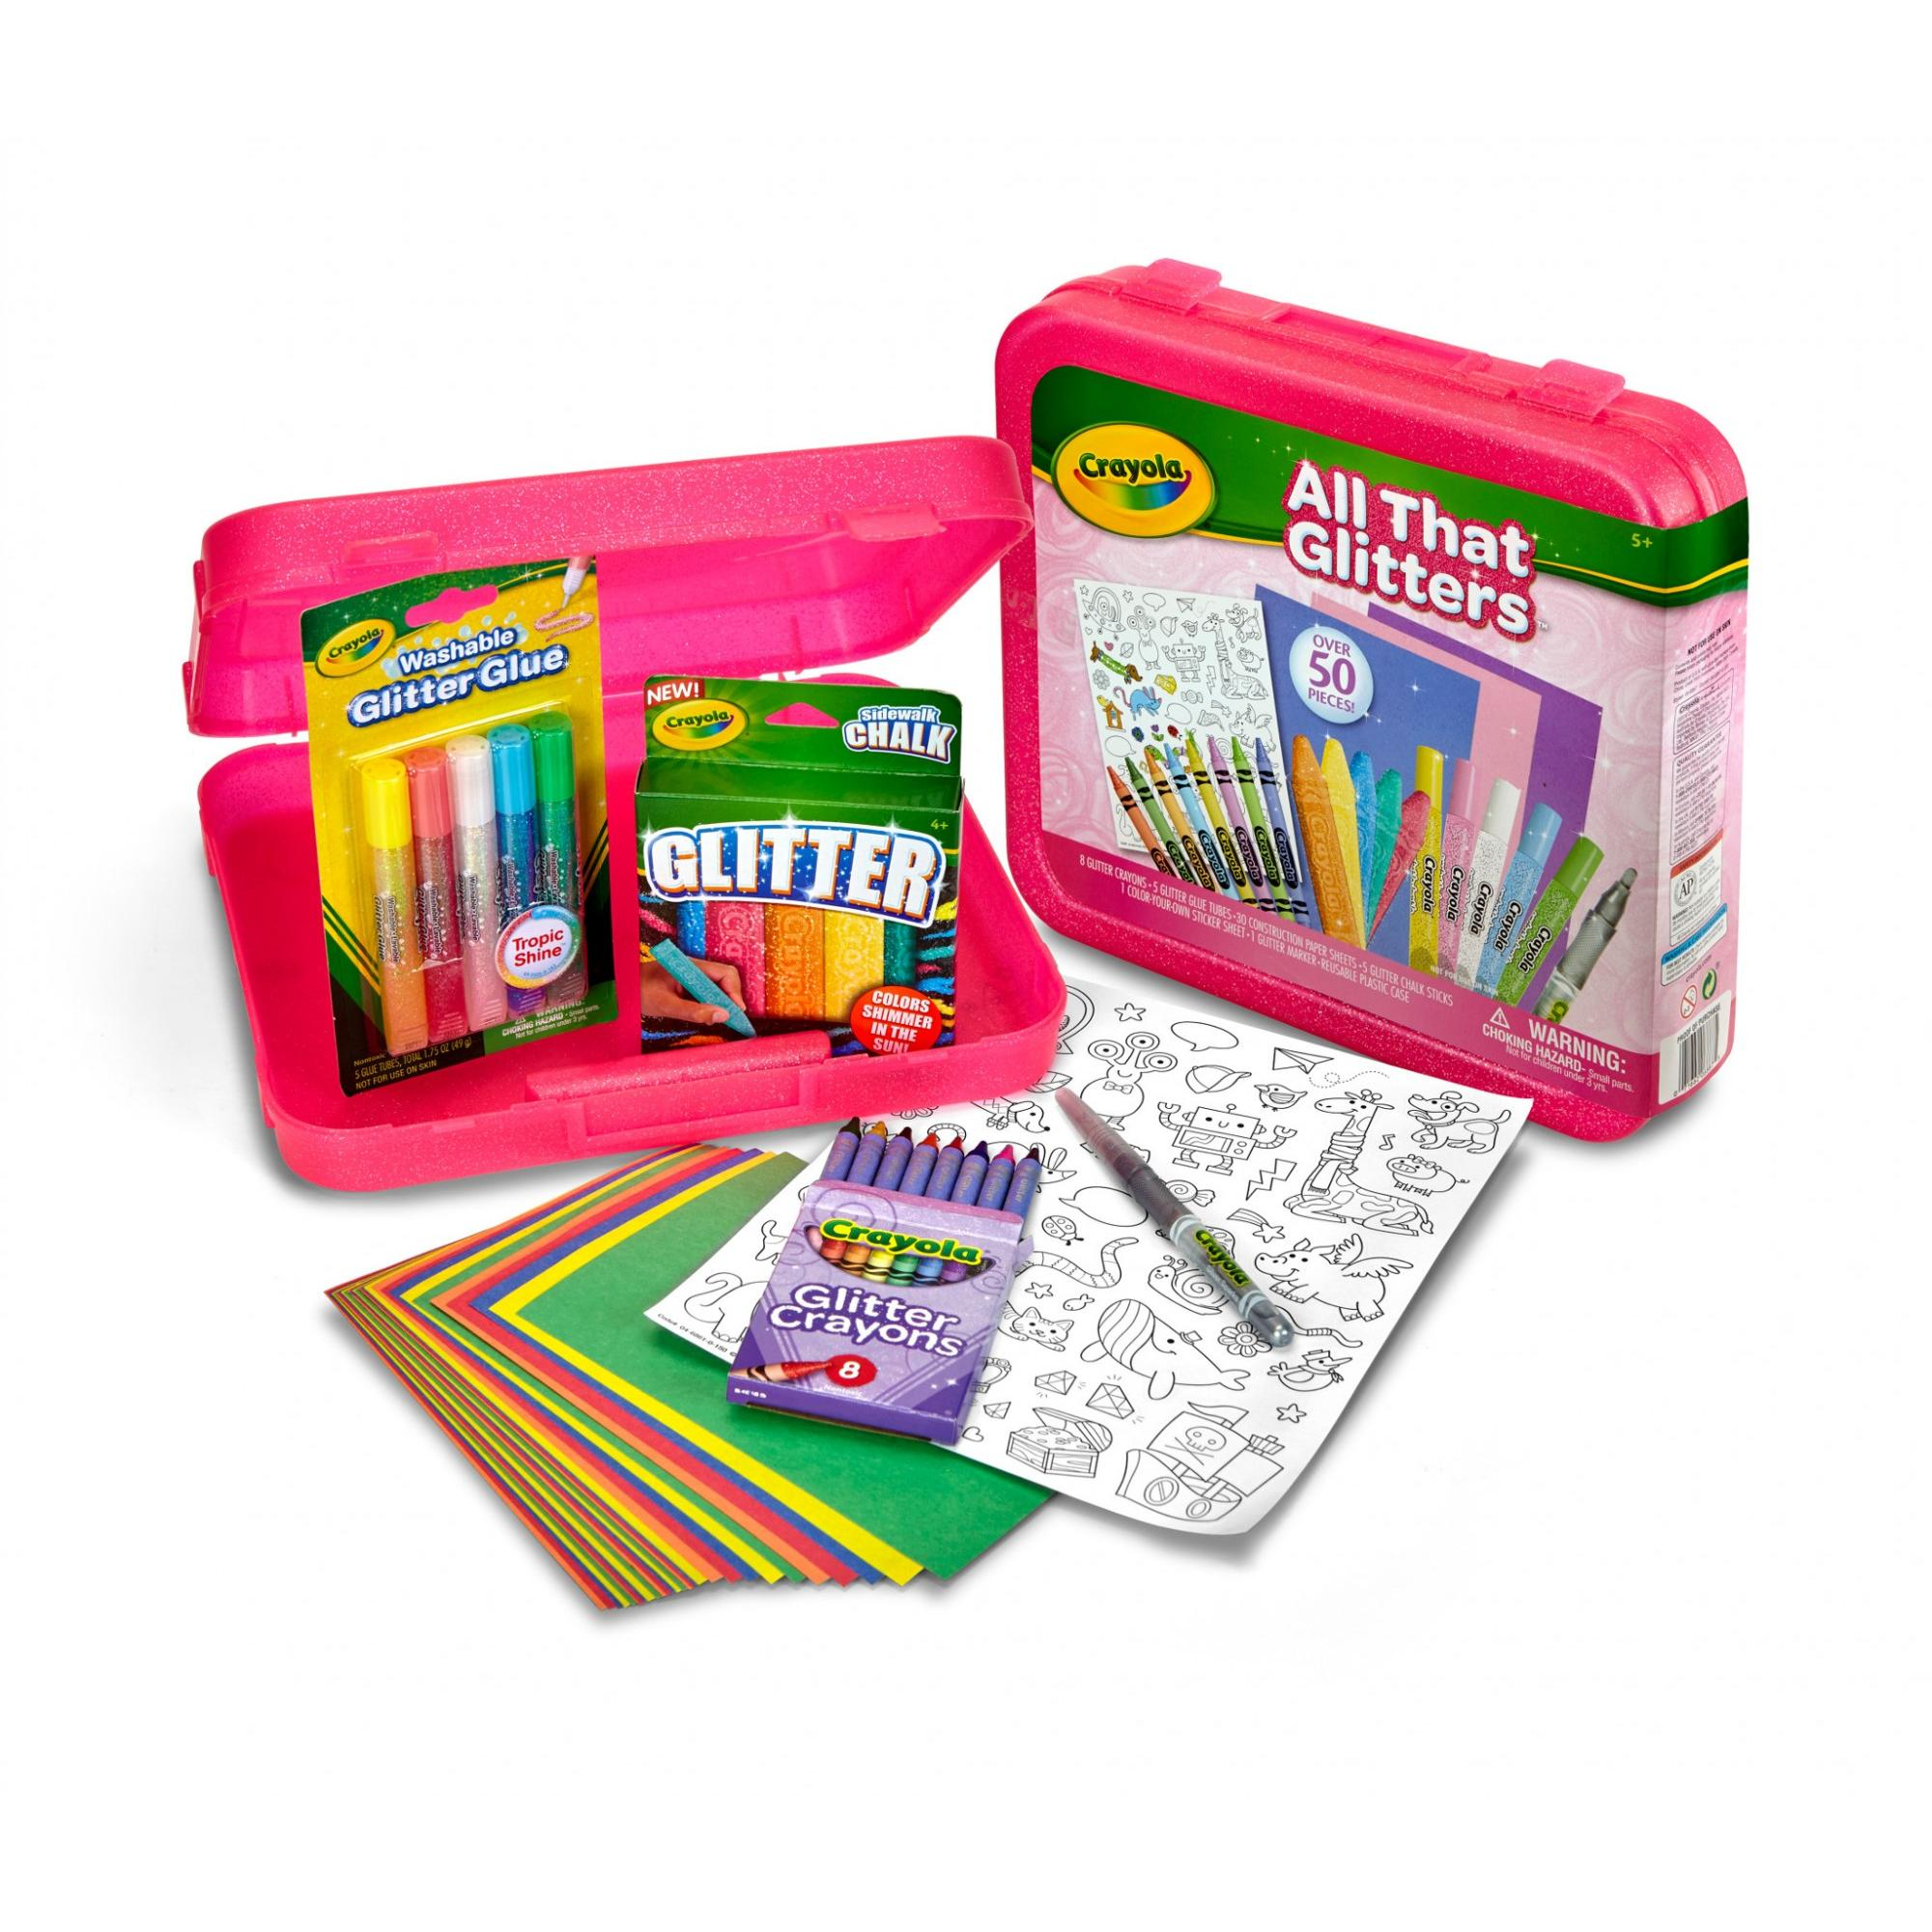 Crayola Art Case, All That Glitters Art Supplies, Gift For Kids, Over 50 Pieces